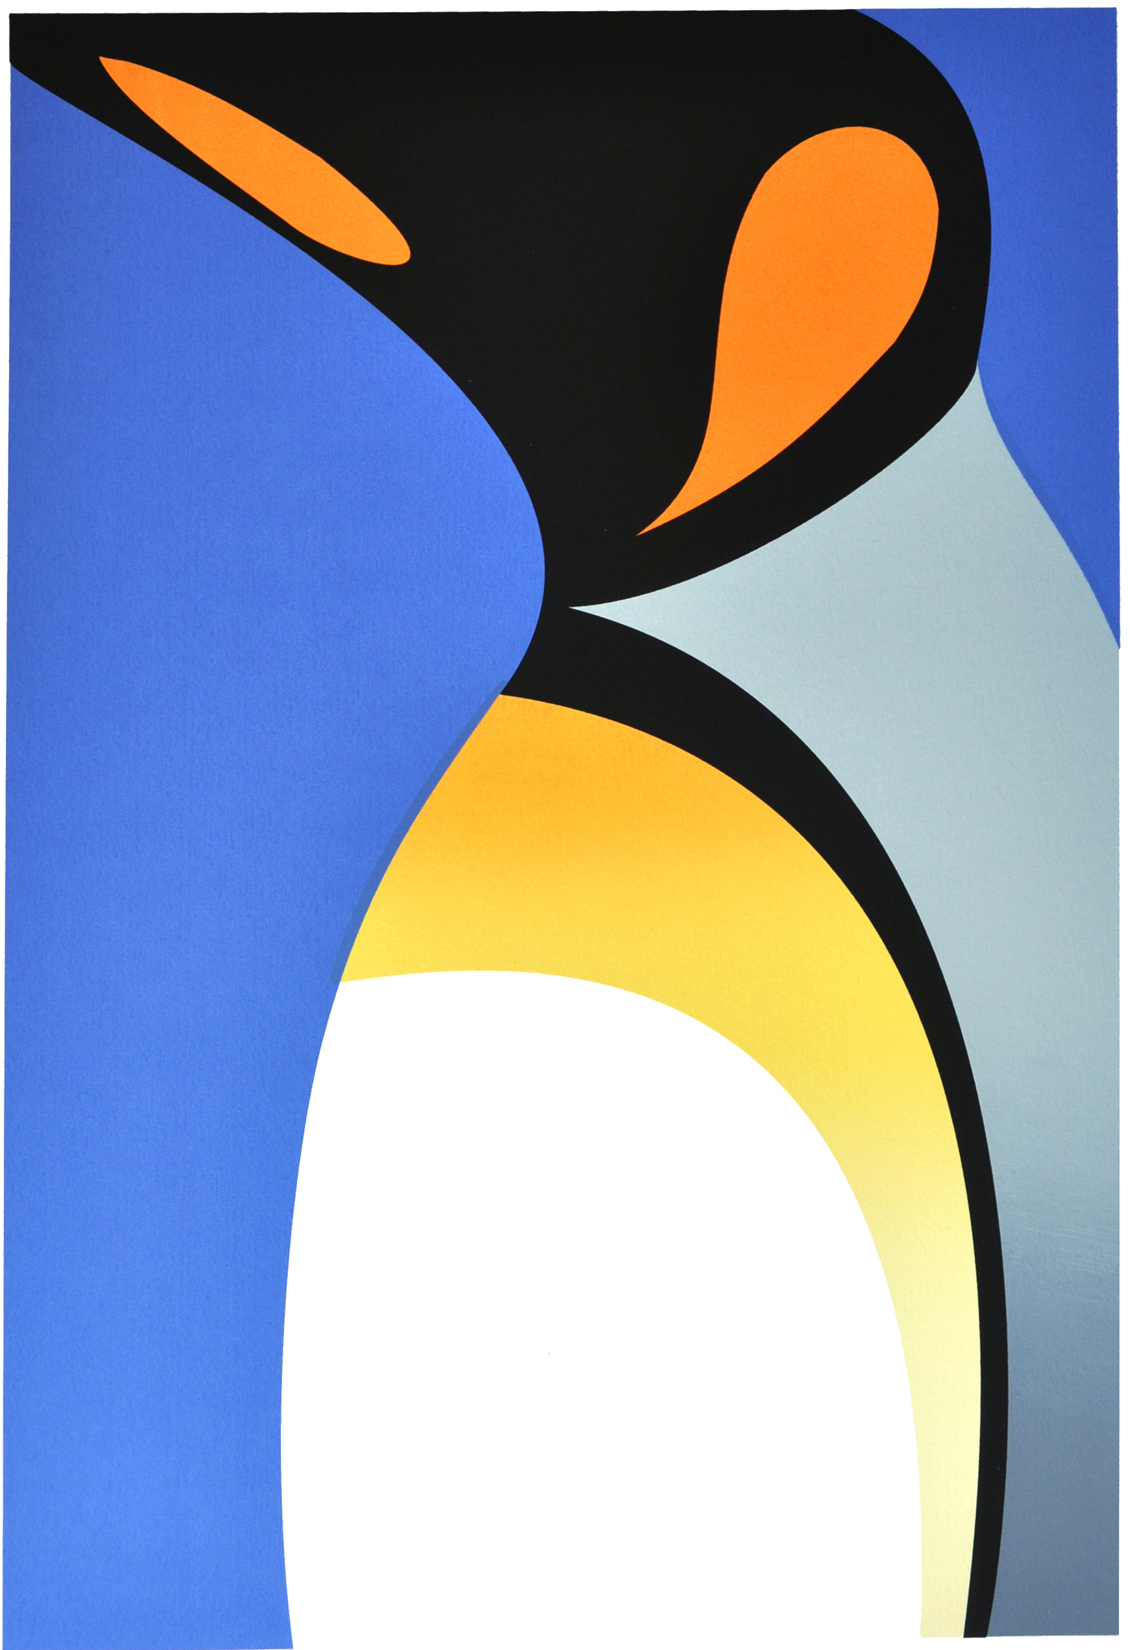 SunLeon_penguin_sm